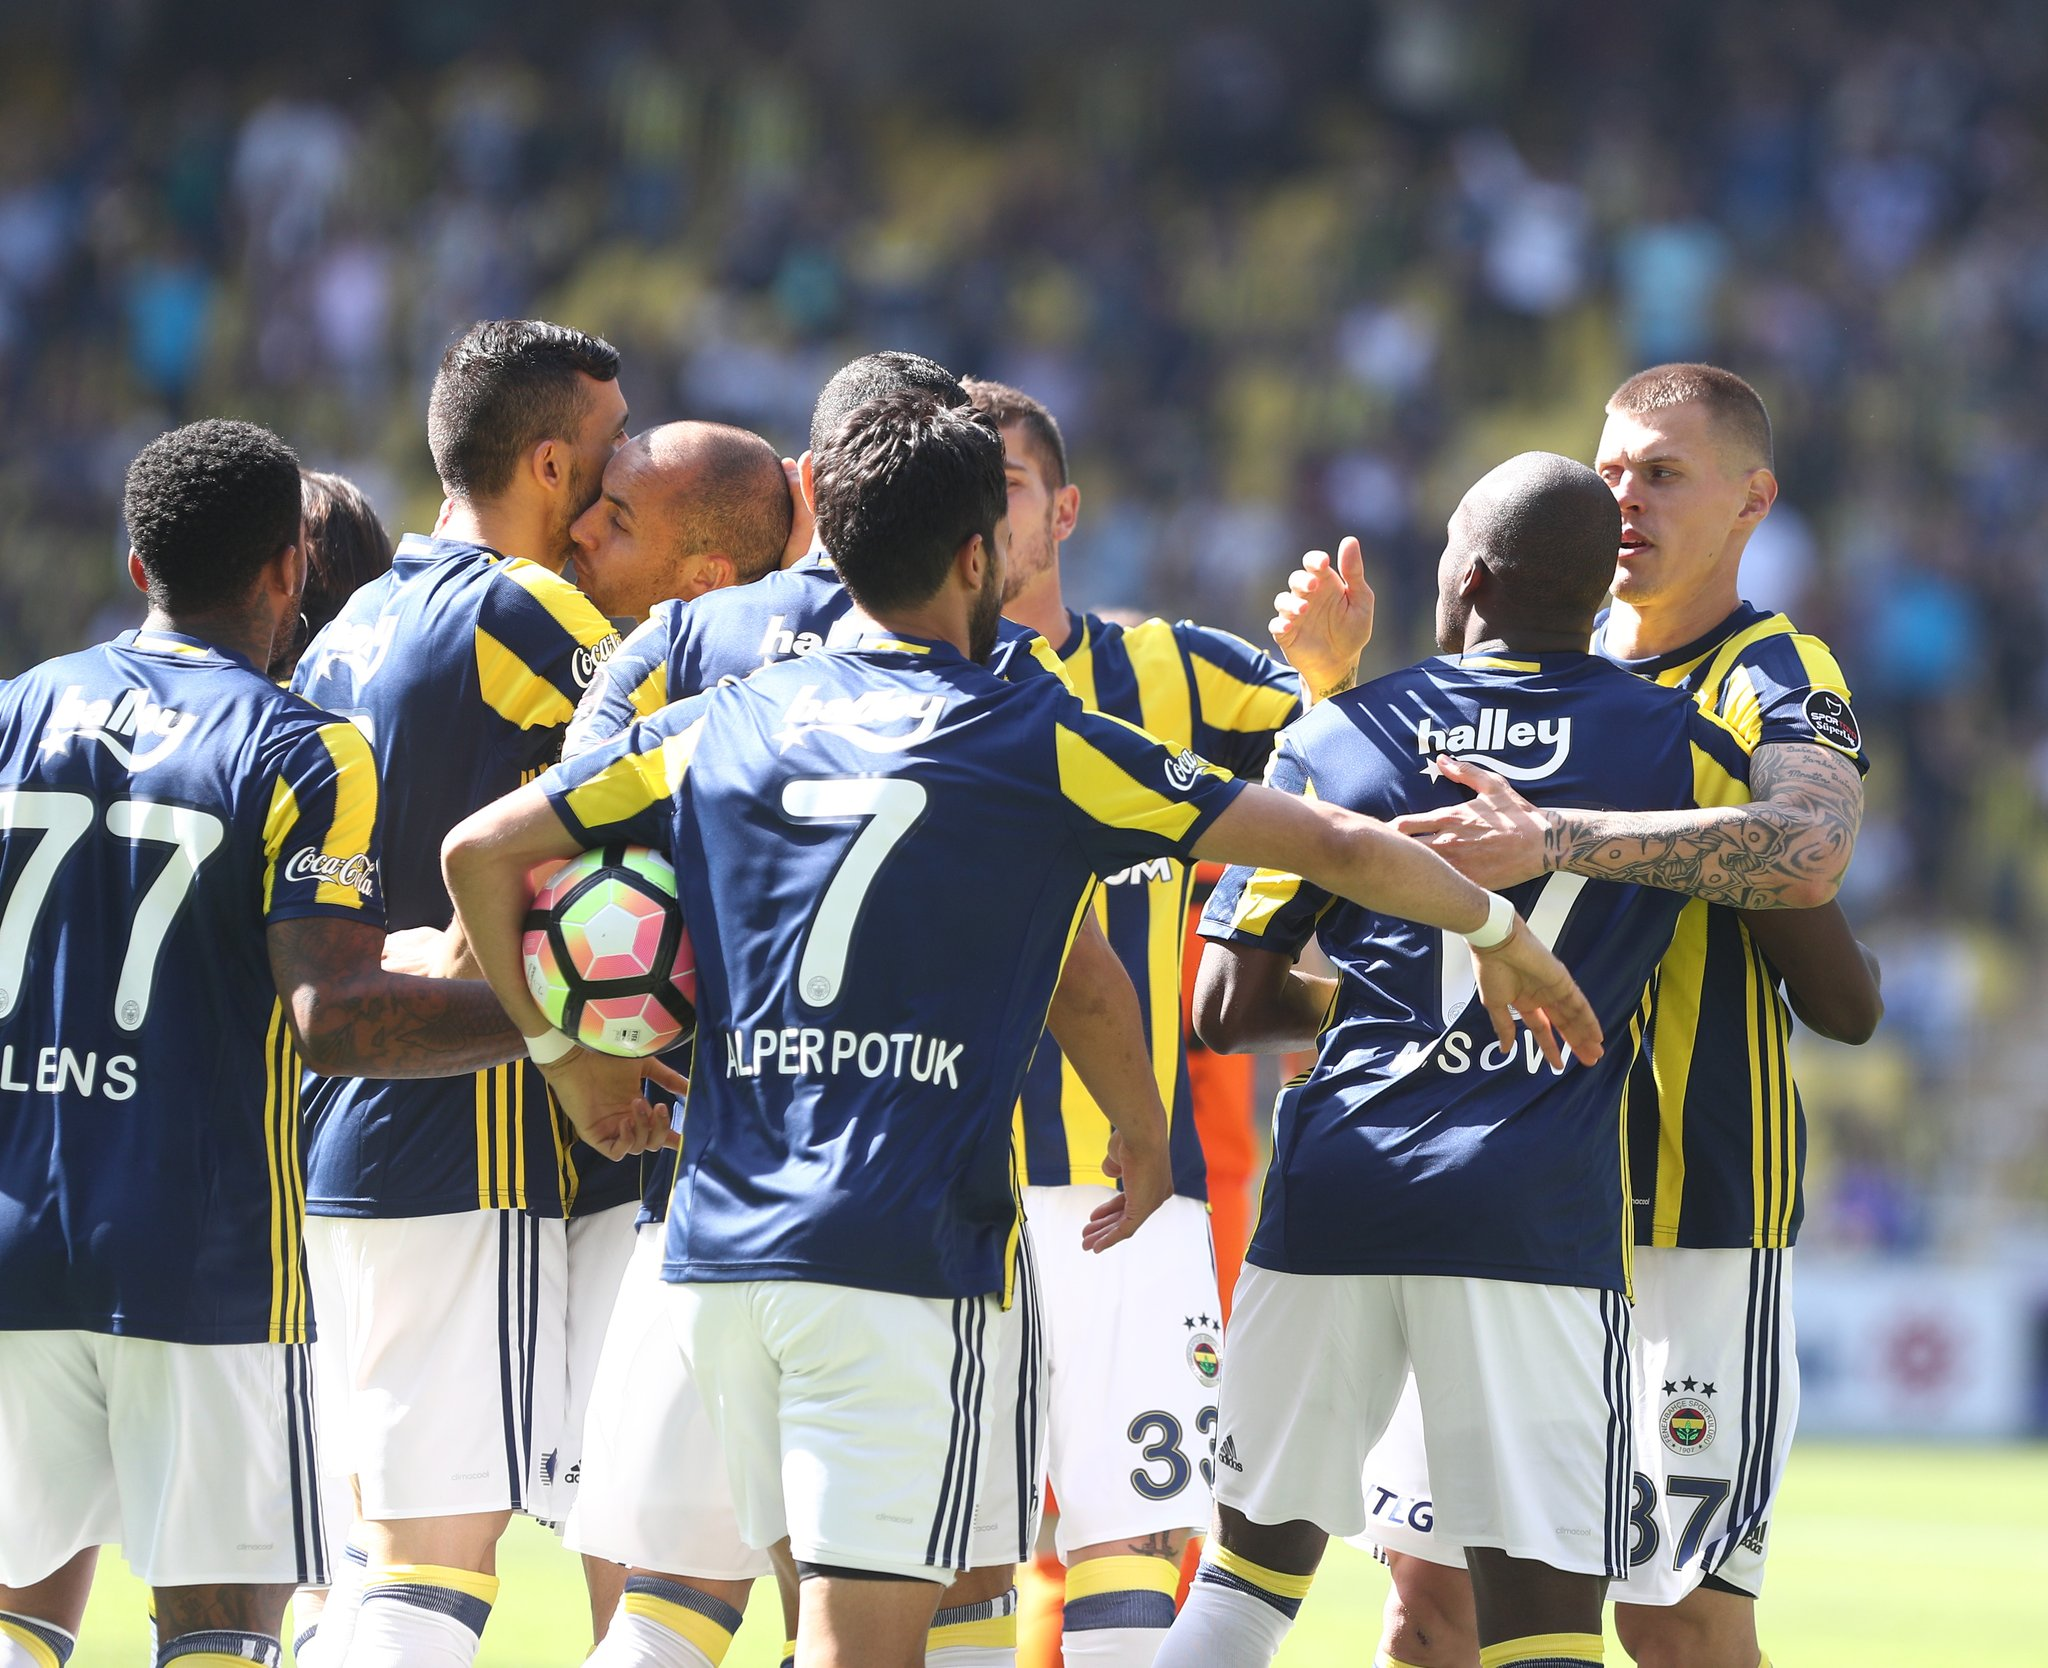 Emenike Makes First 2017 Appearance As Fenerbahce Edge Igiebor's Rizespor